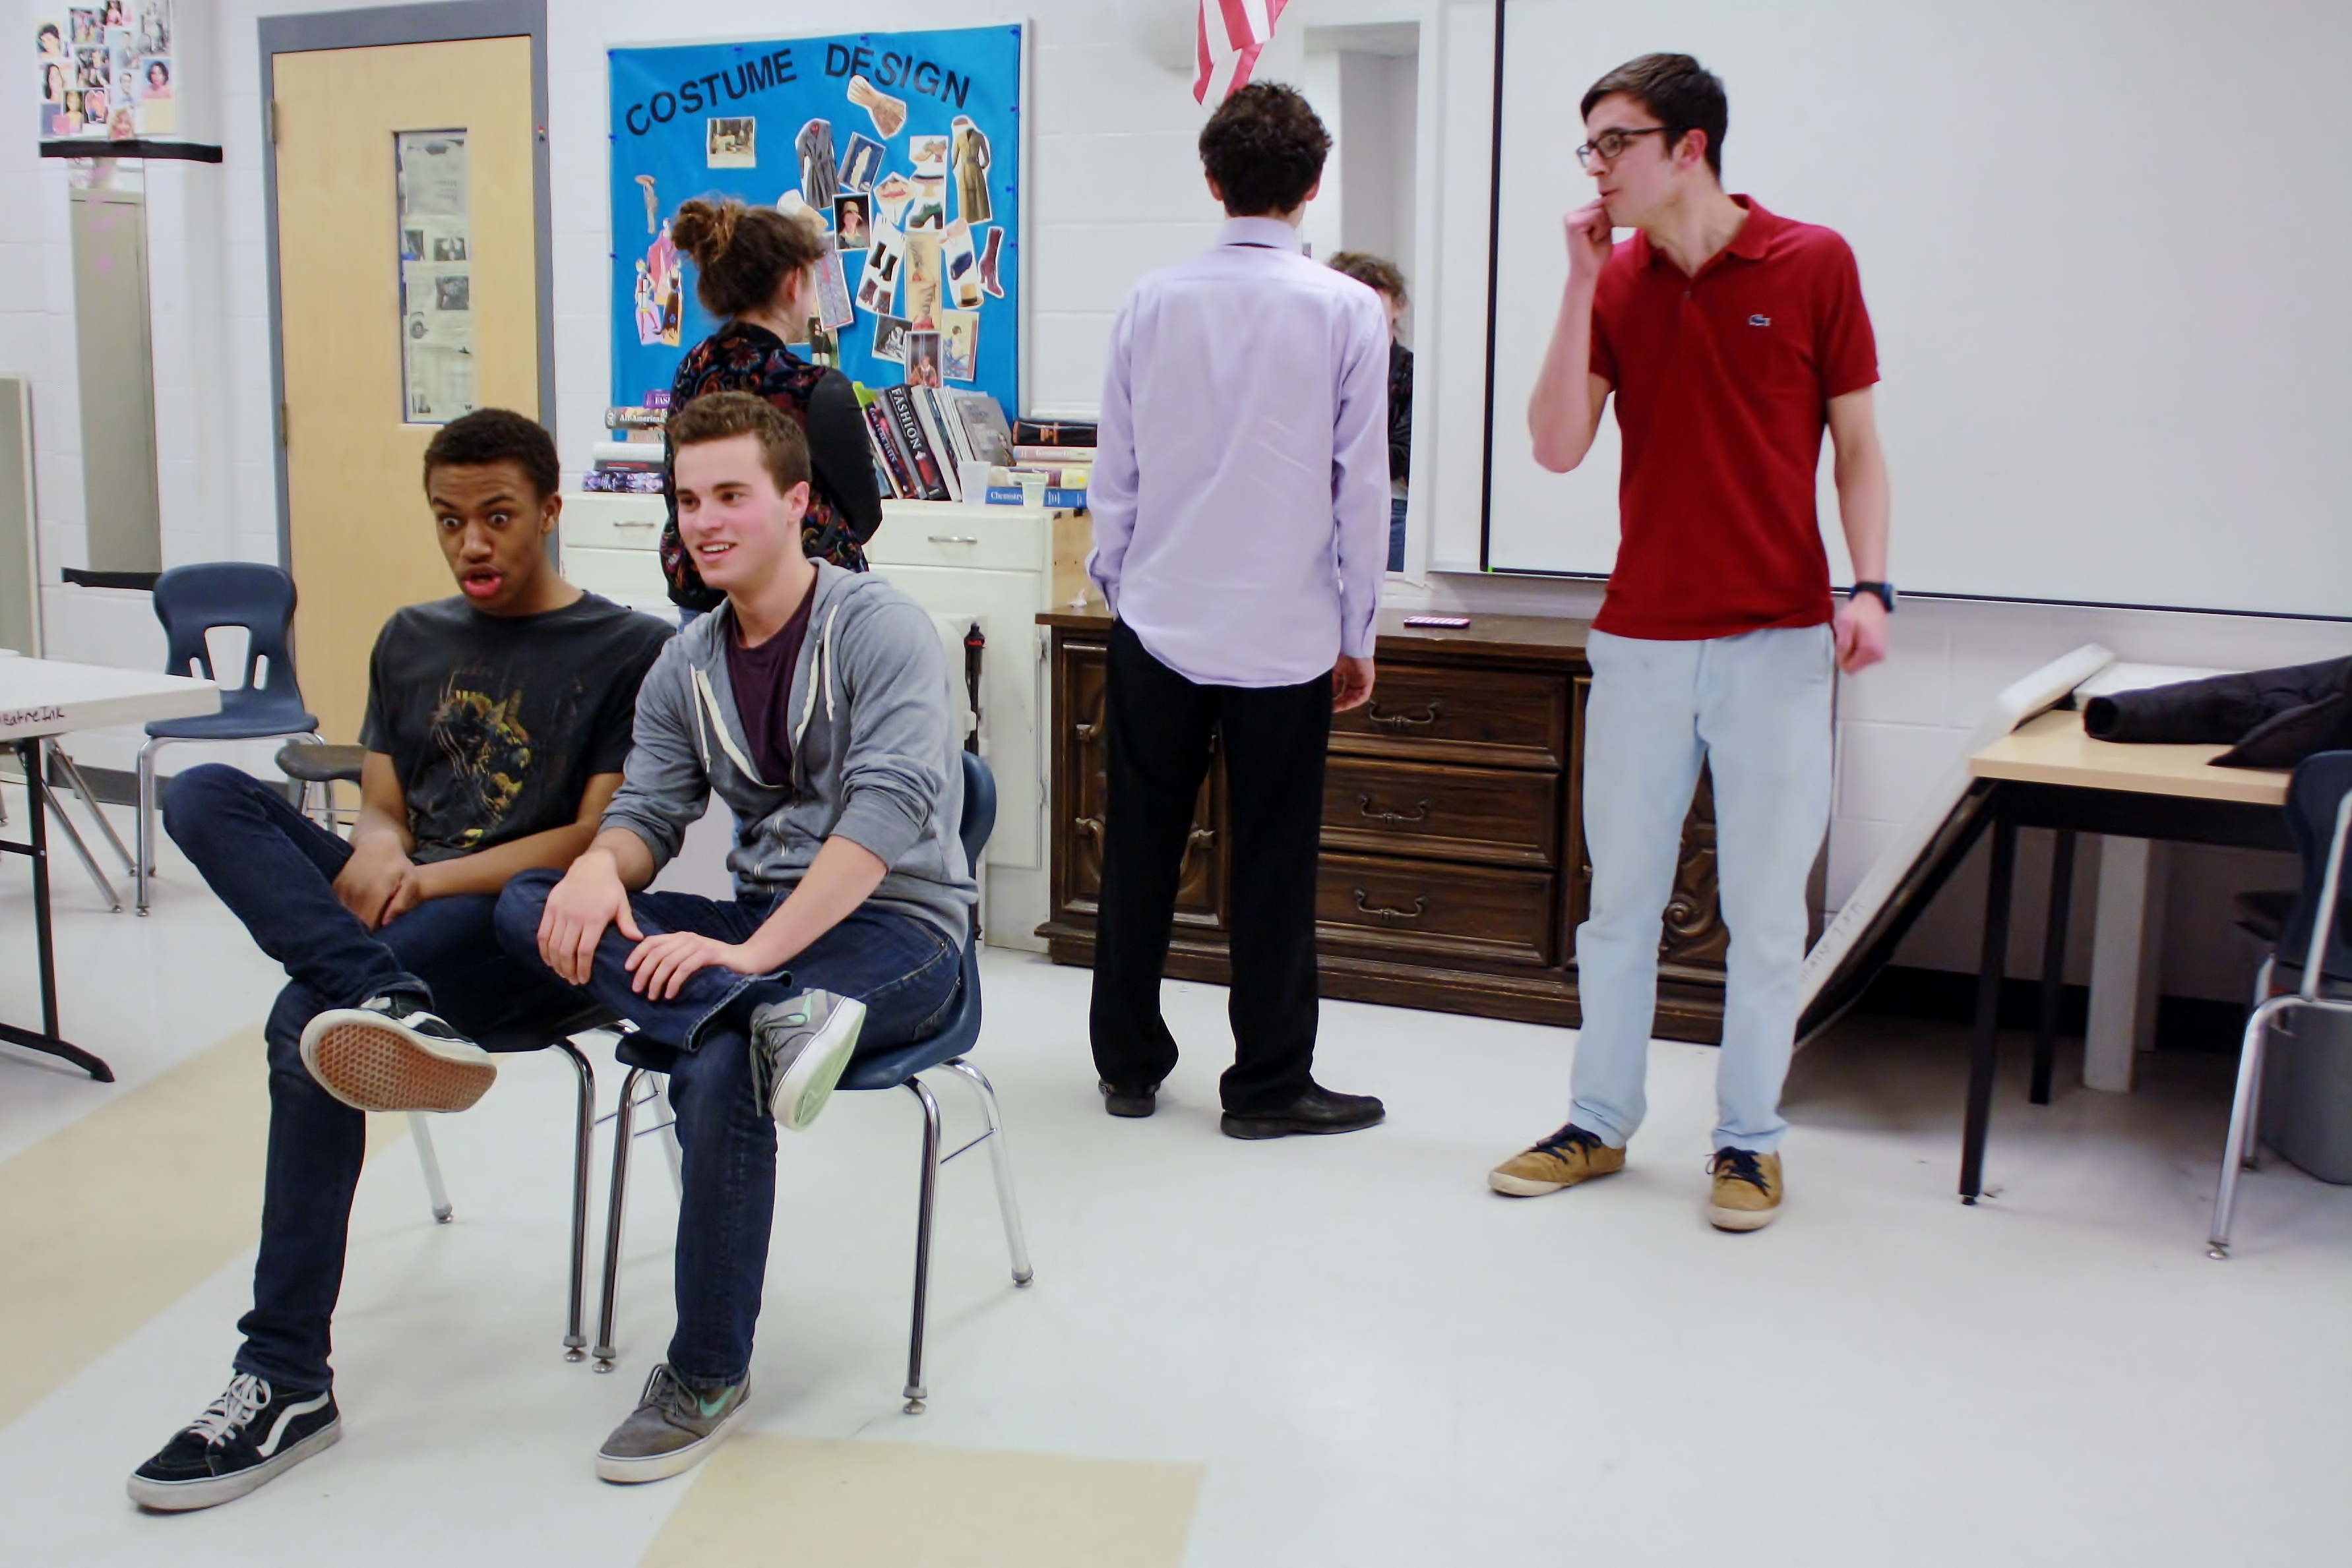 The cast of Spontaneous Generation rehearses one of its improvisational games. Photo by Devin Perlo.